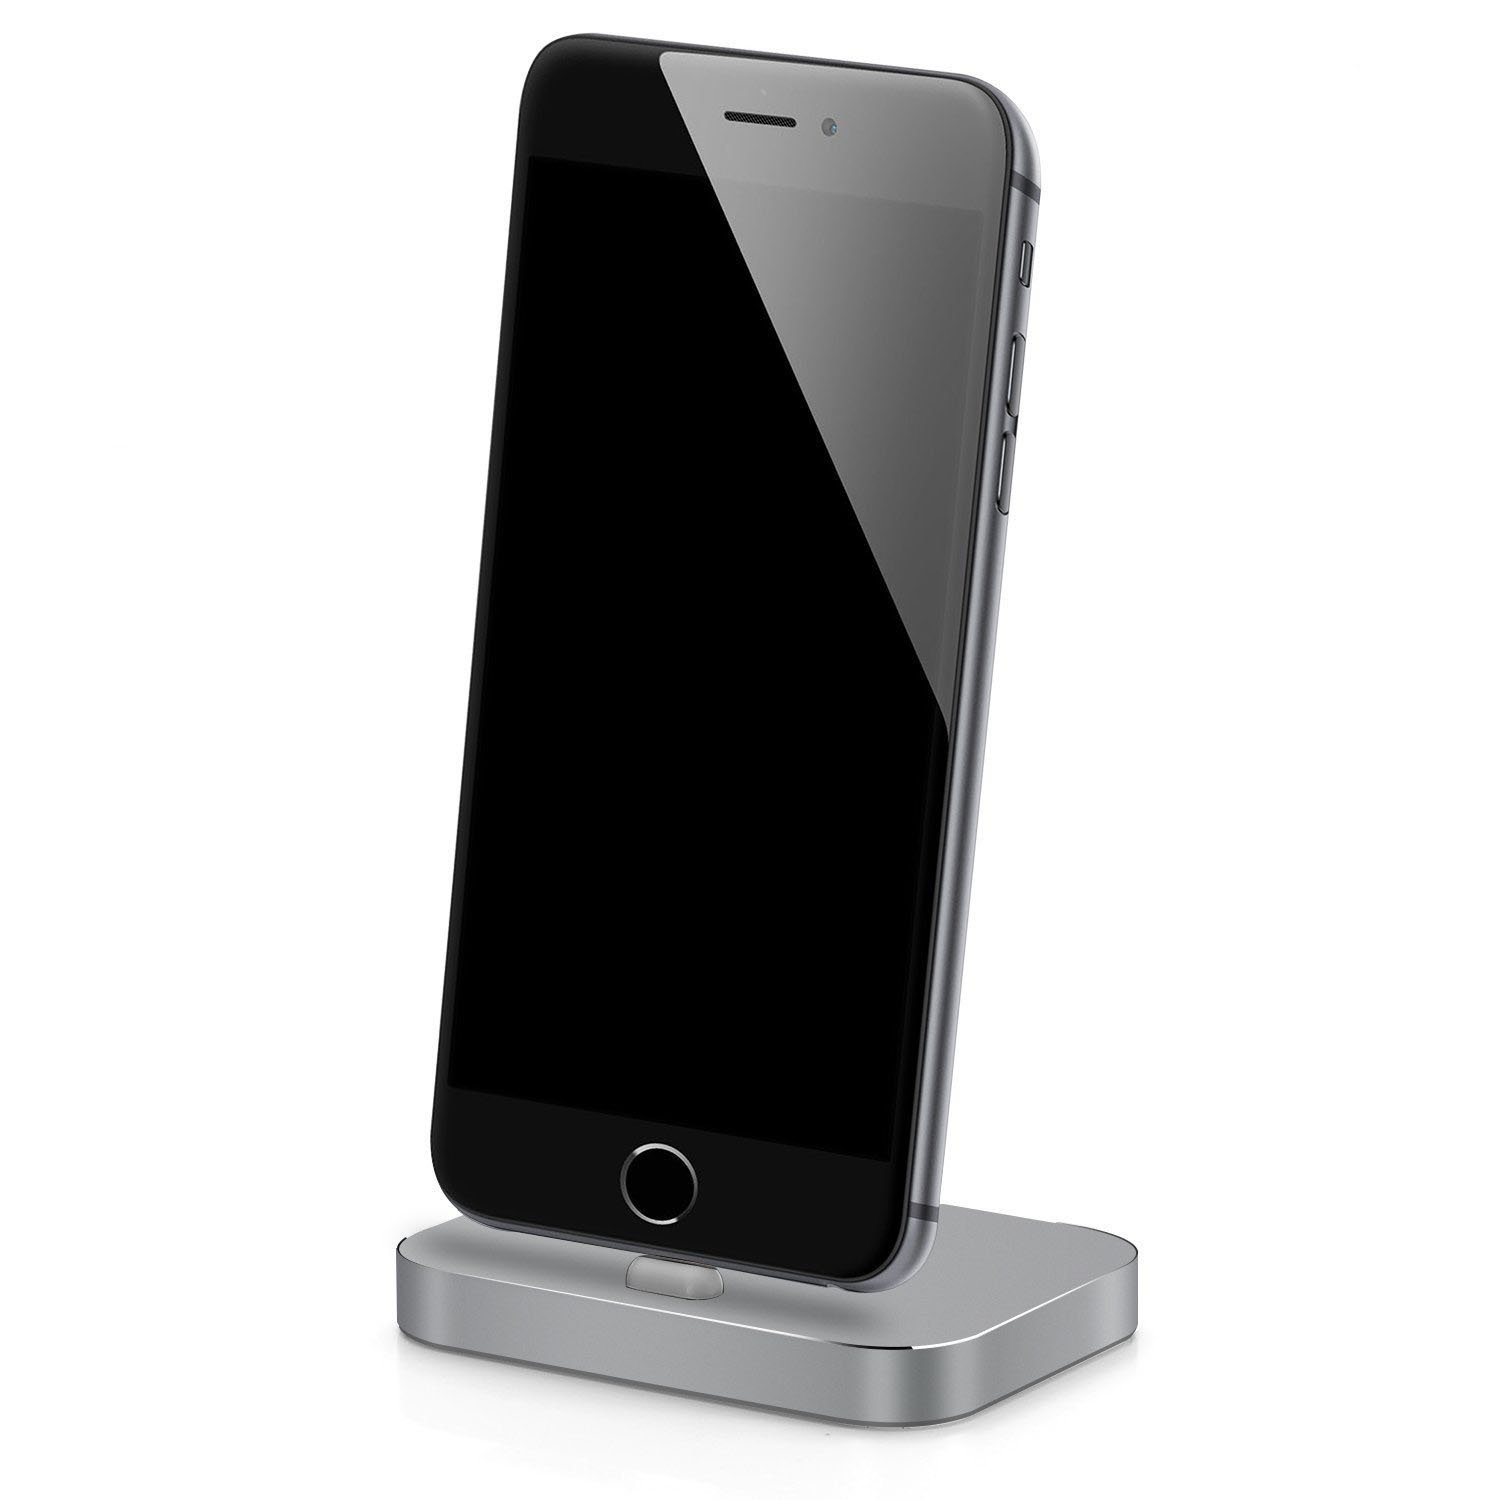 Apple iPhone Lightning Charging Stand Dock Station for iPhone 7/7 Plus/SE/5/c/s/6/6s, 6/6s Plus/iPod Nano 7th Gen/iPod Touch 5,6th Gen, Aluminum Charger Cradle for Charge and Sync Data (Space Gray)